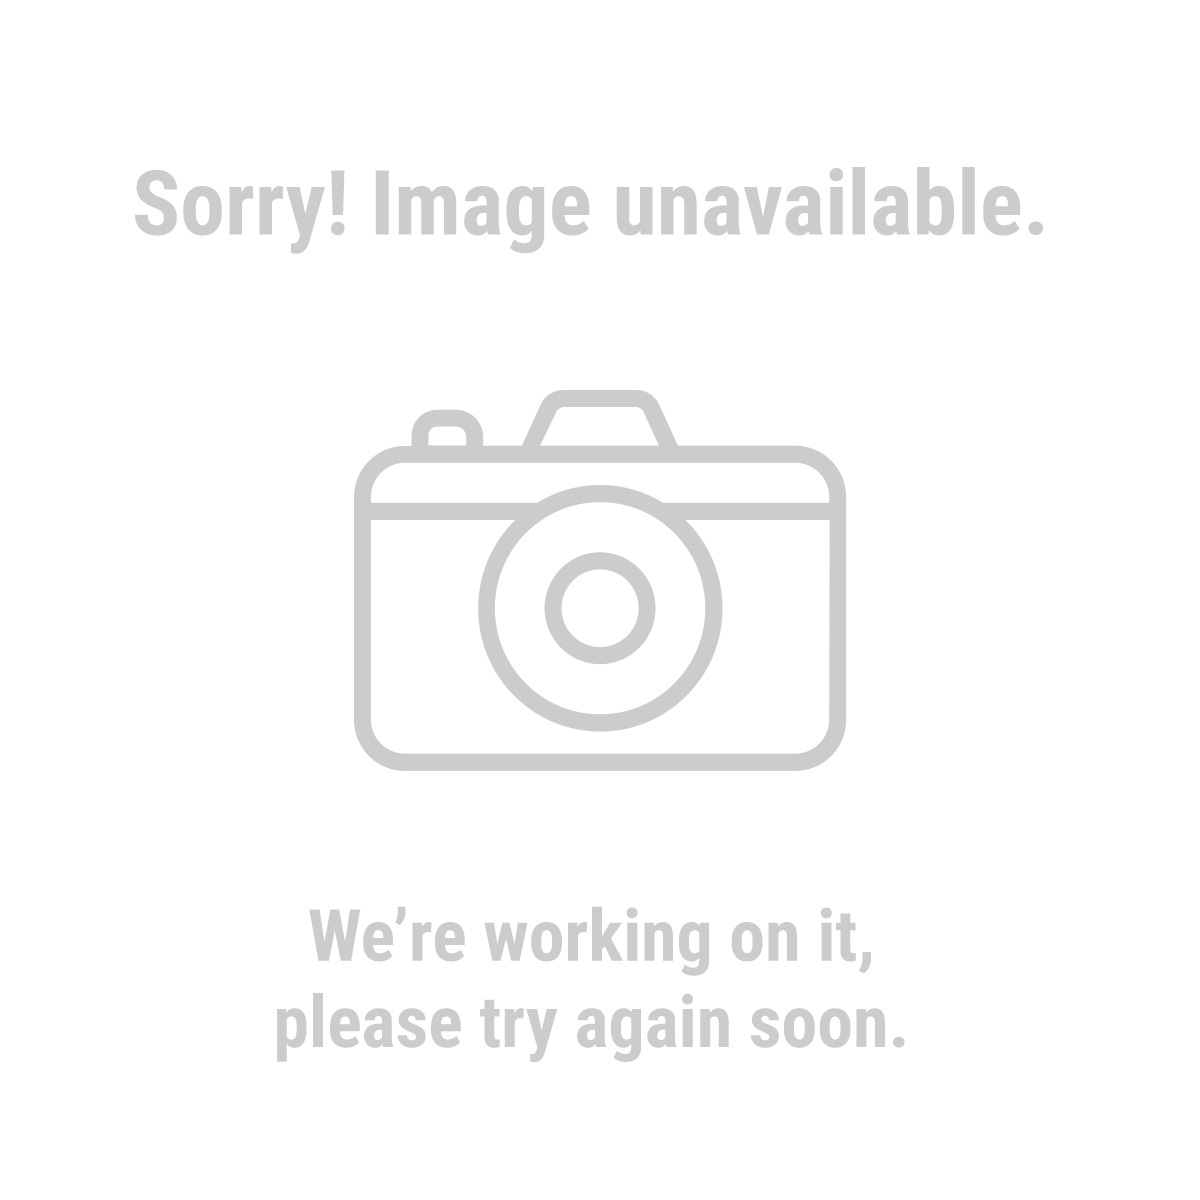 Warrior® 1800 13 Piece Titanium Nitride Coated Drill Bits